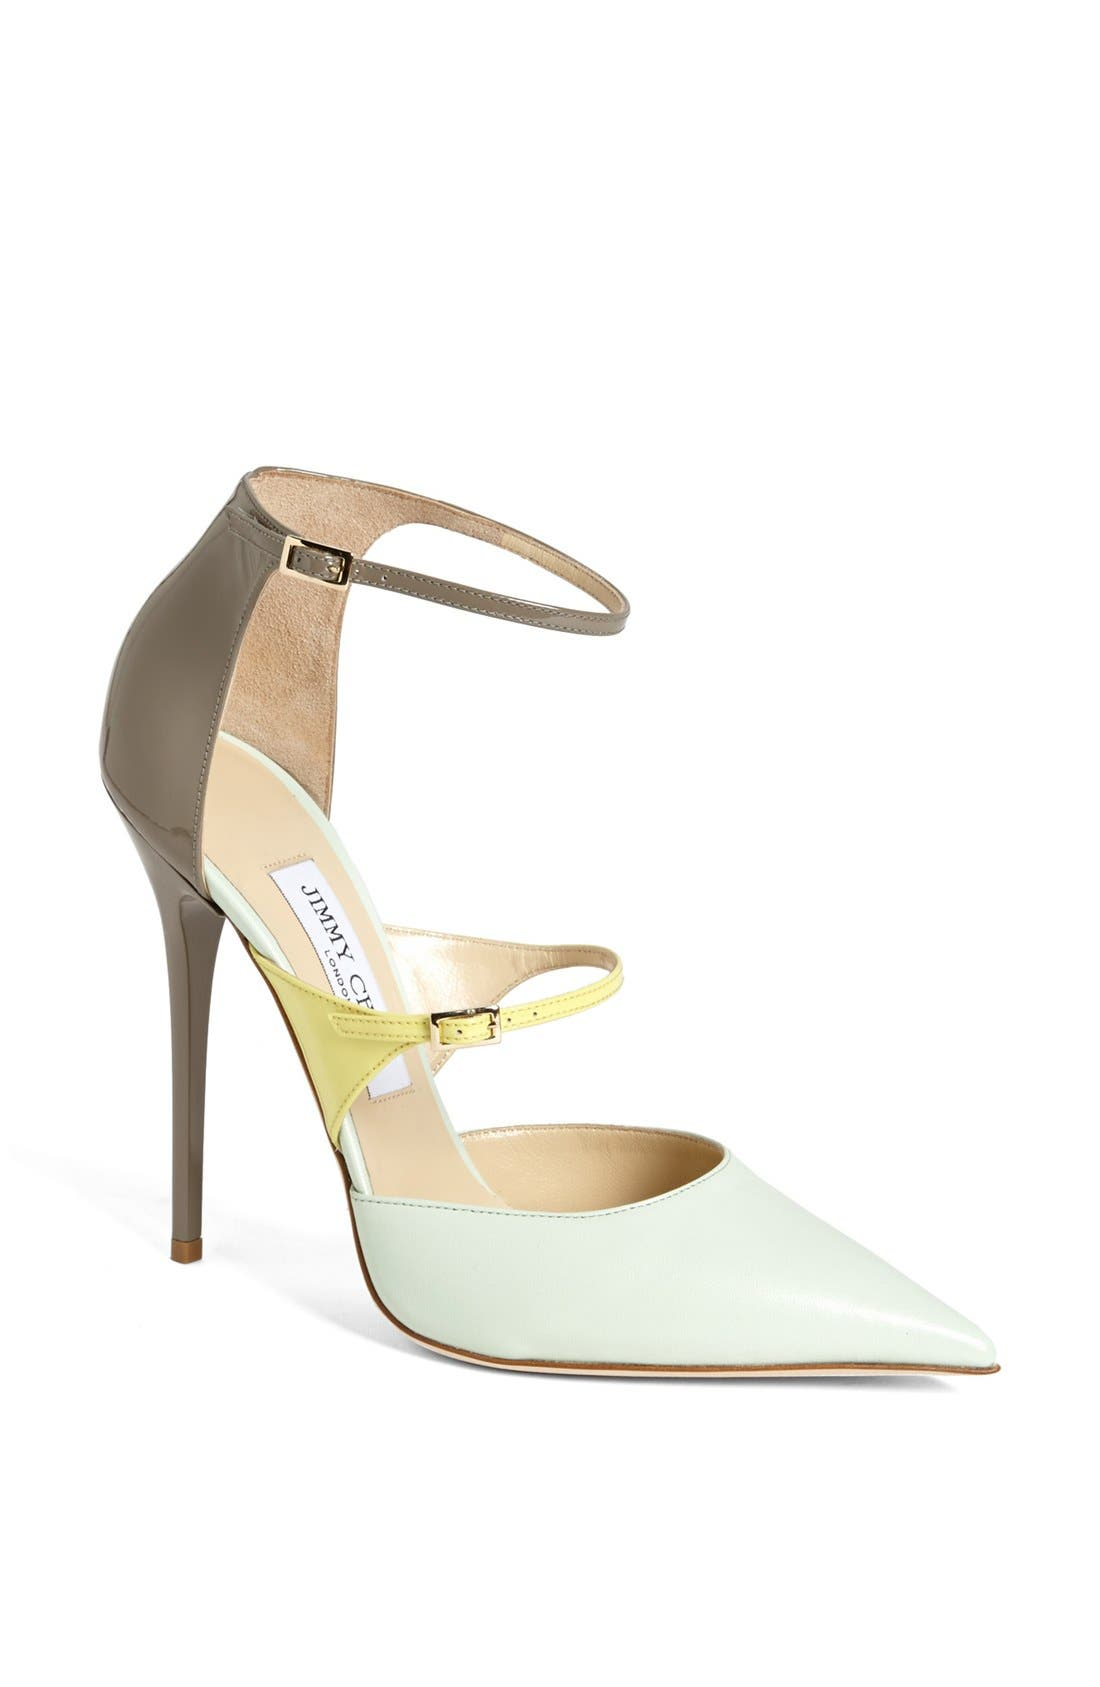 Main Image - Jimmy Choo 'Sunday' Ankle Strap Pump